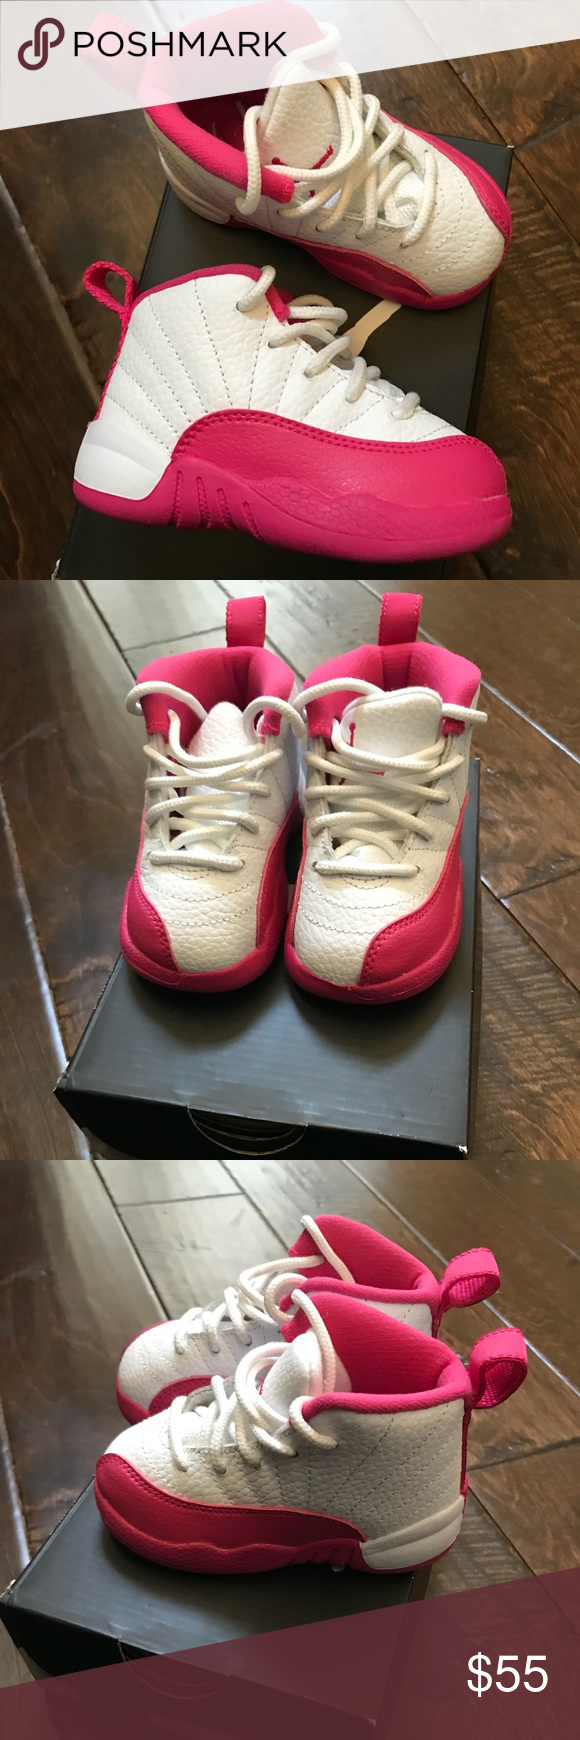 new product c5aa3 9b2ac Air Jordan Retro 12 Valentine Edition Girls New retro 12 ...